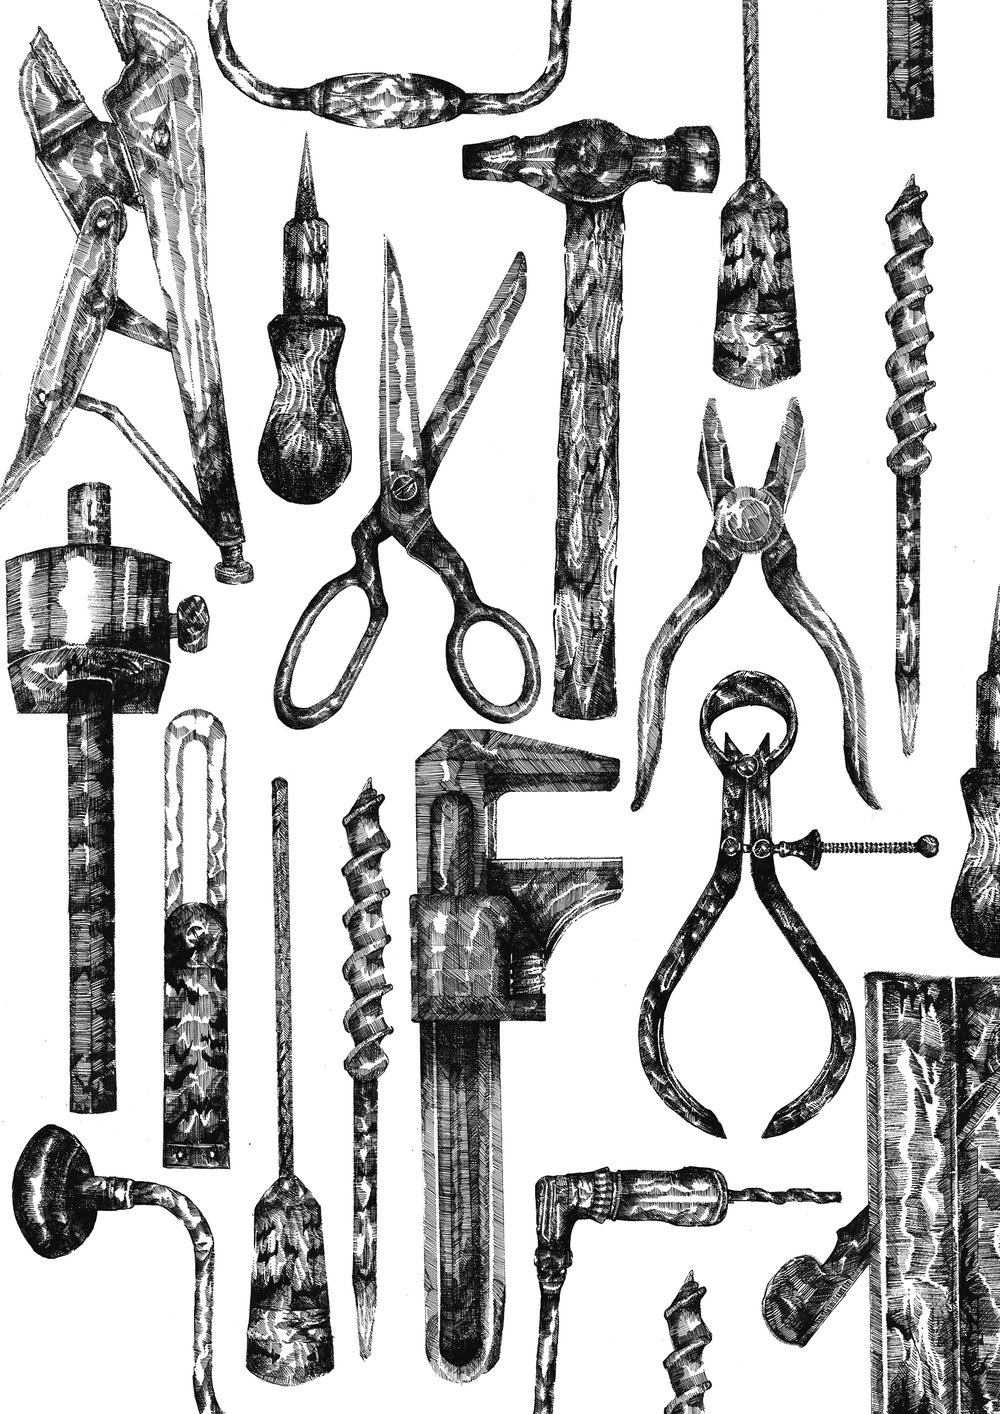 © Ruth Emma Fox Grandads Black and White Tools Illustration.jpg